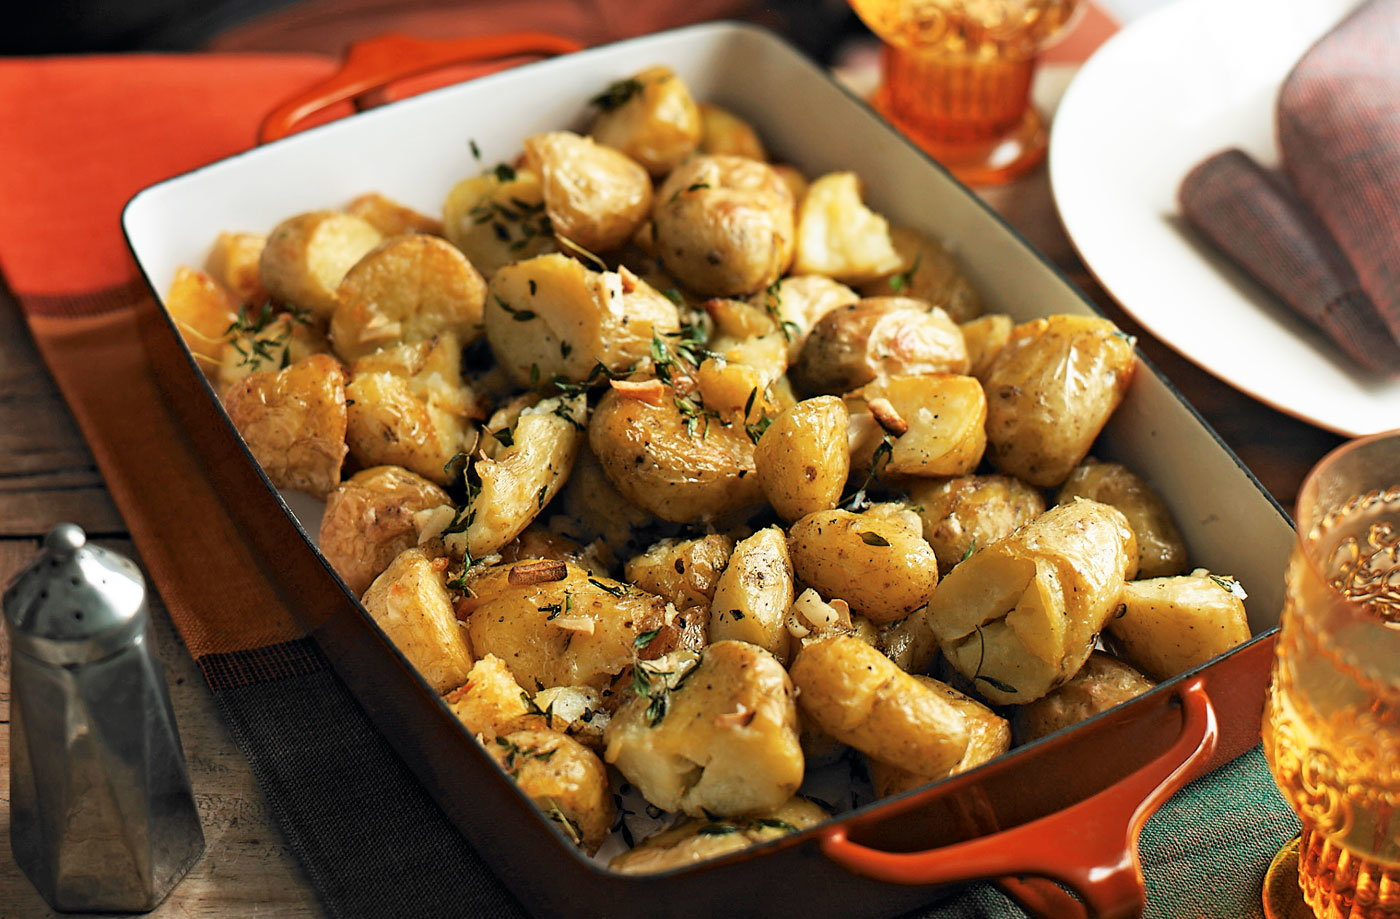 Crispy potatoes with garlic and thyme